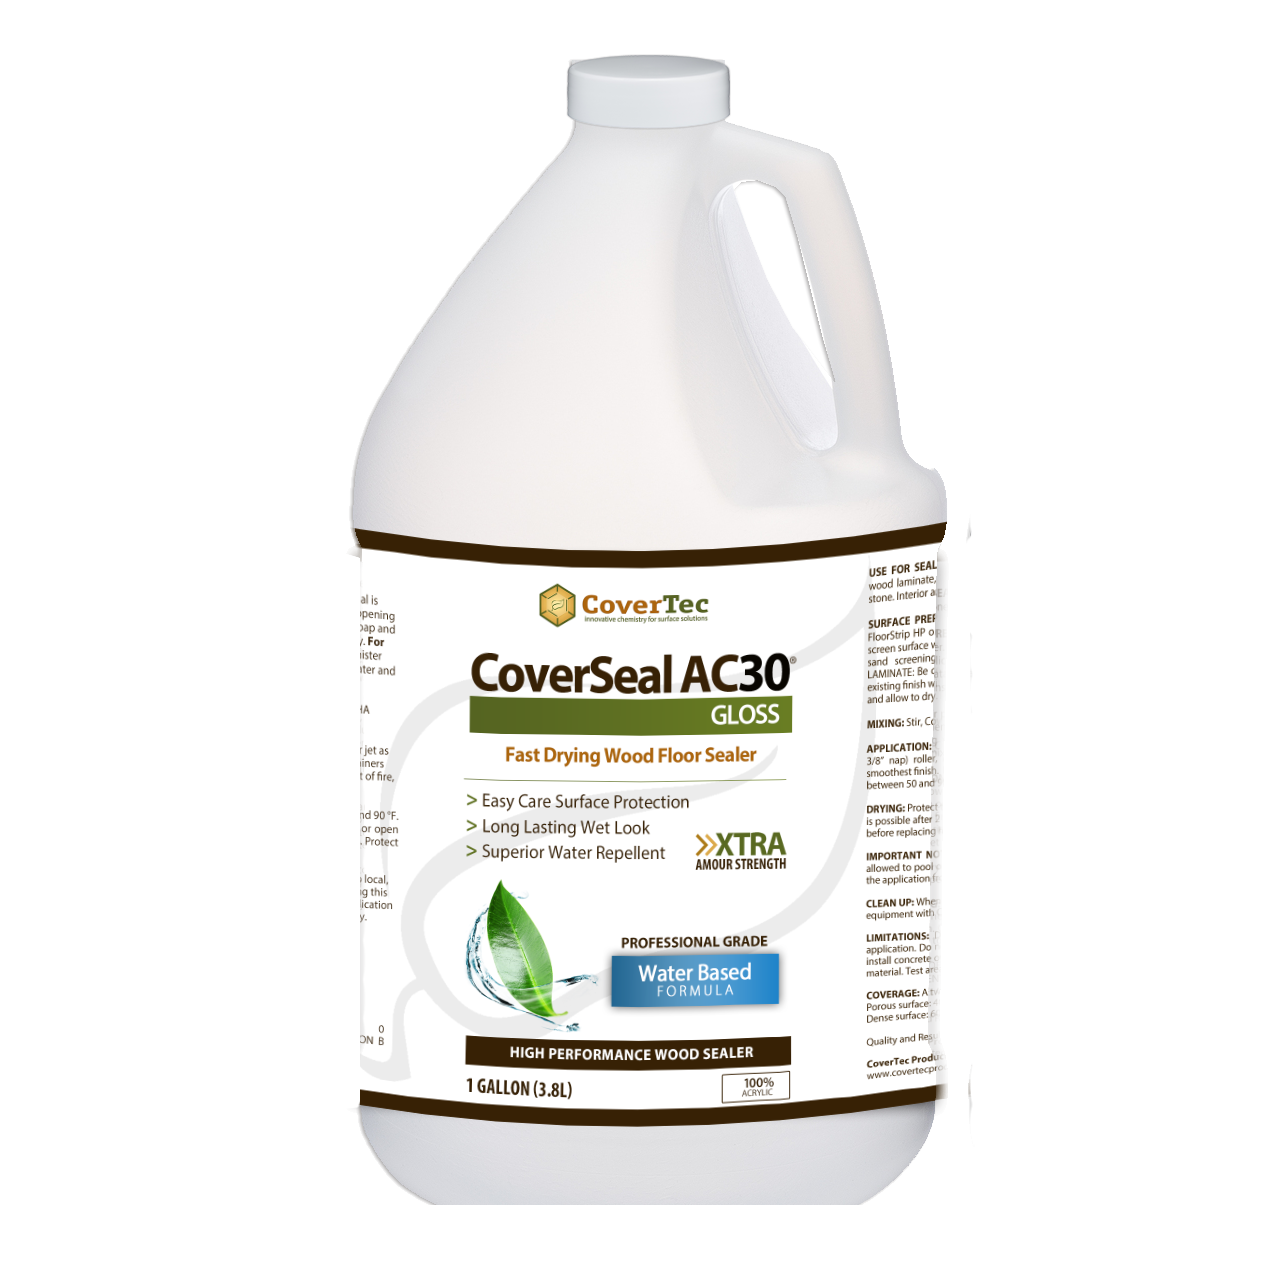 CoverSeal AC30 Wood Floor/Laminated, H/Gloss Sealer